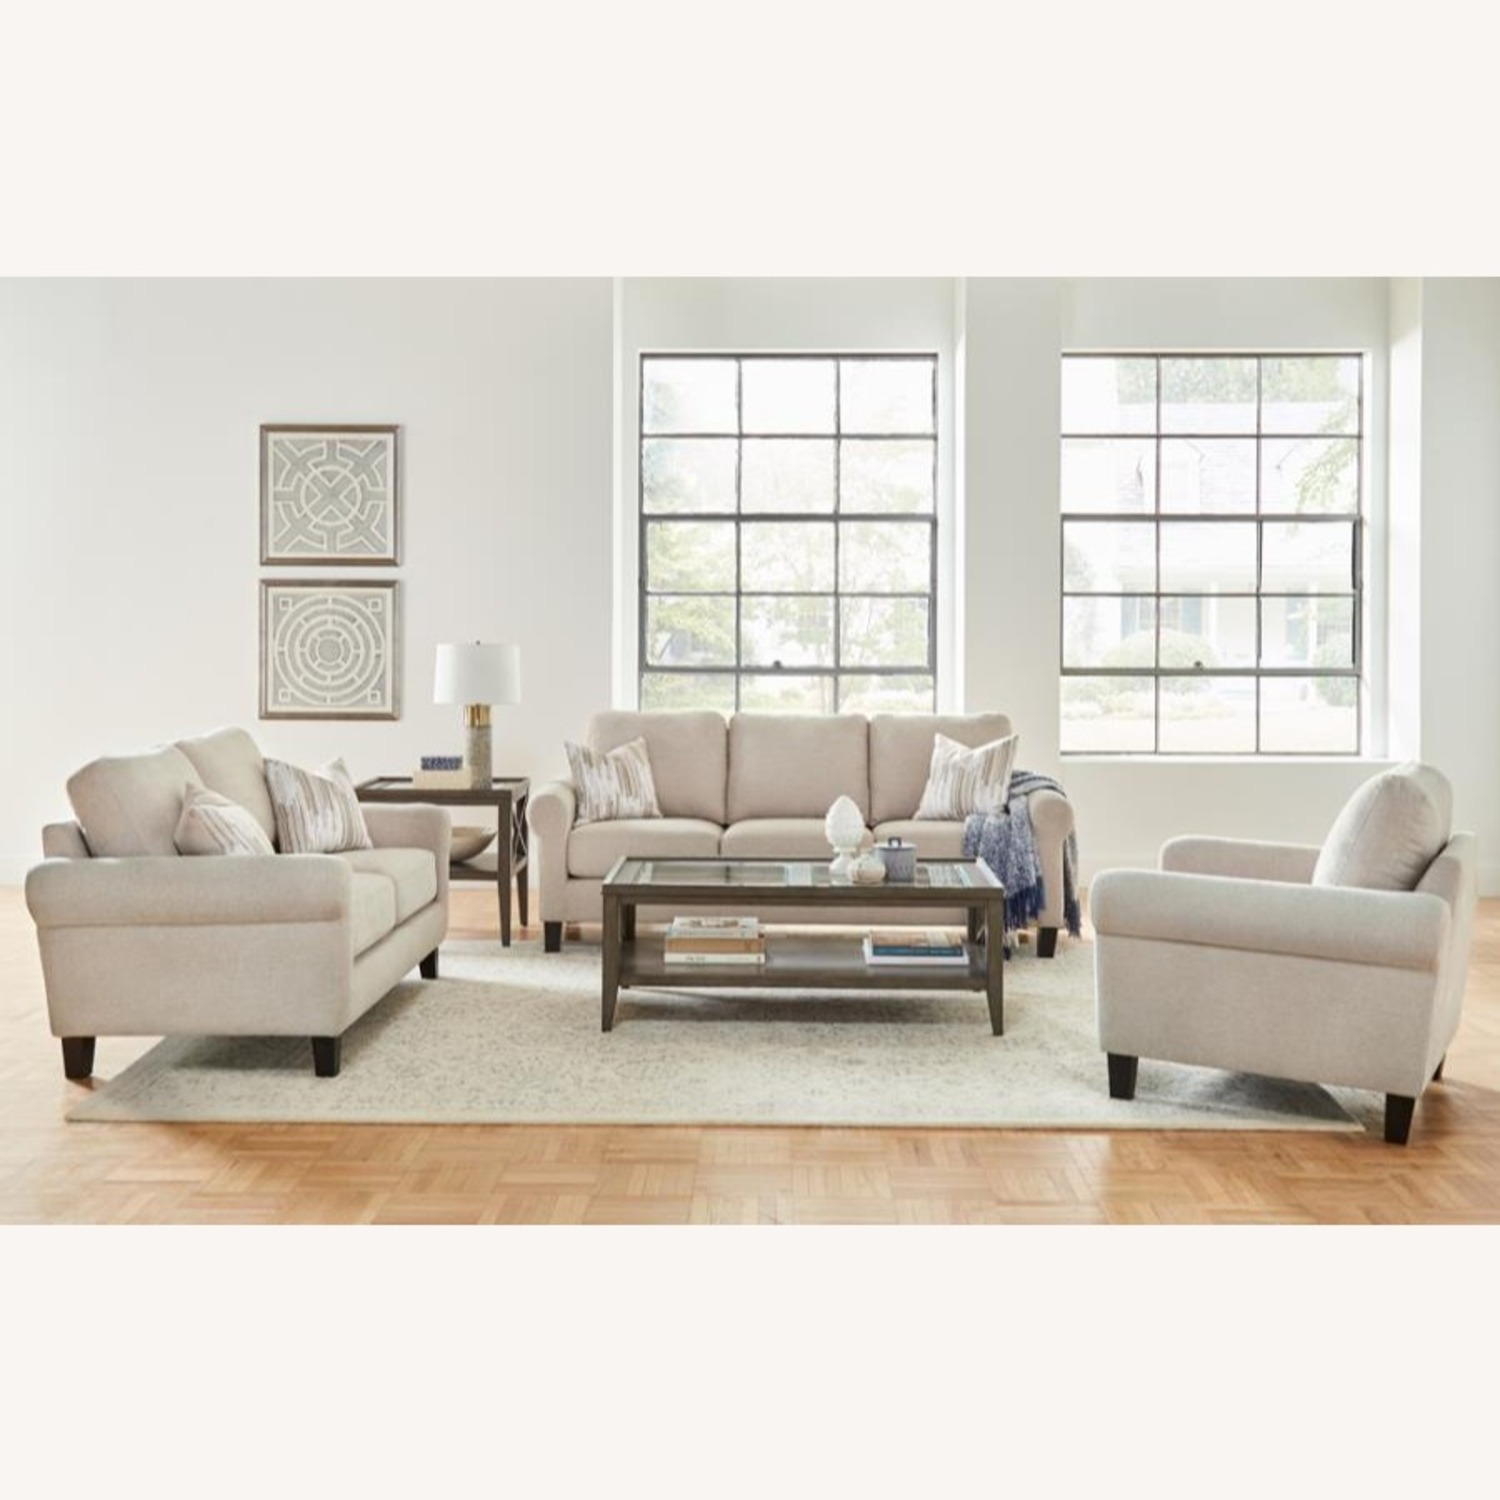 Loveseat In Oatmeal Chenille Upholstery - image-2